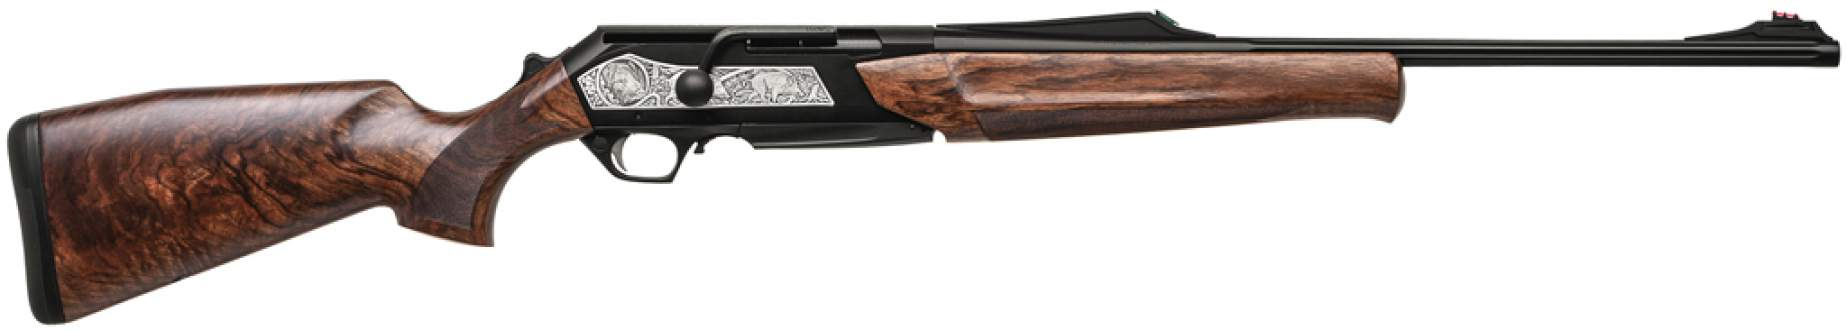 Карабин Browning Maral SF Big Game Fluted HC кал. 30-06